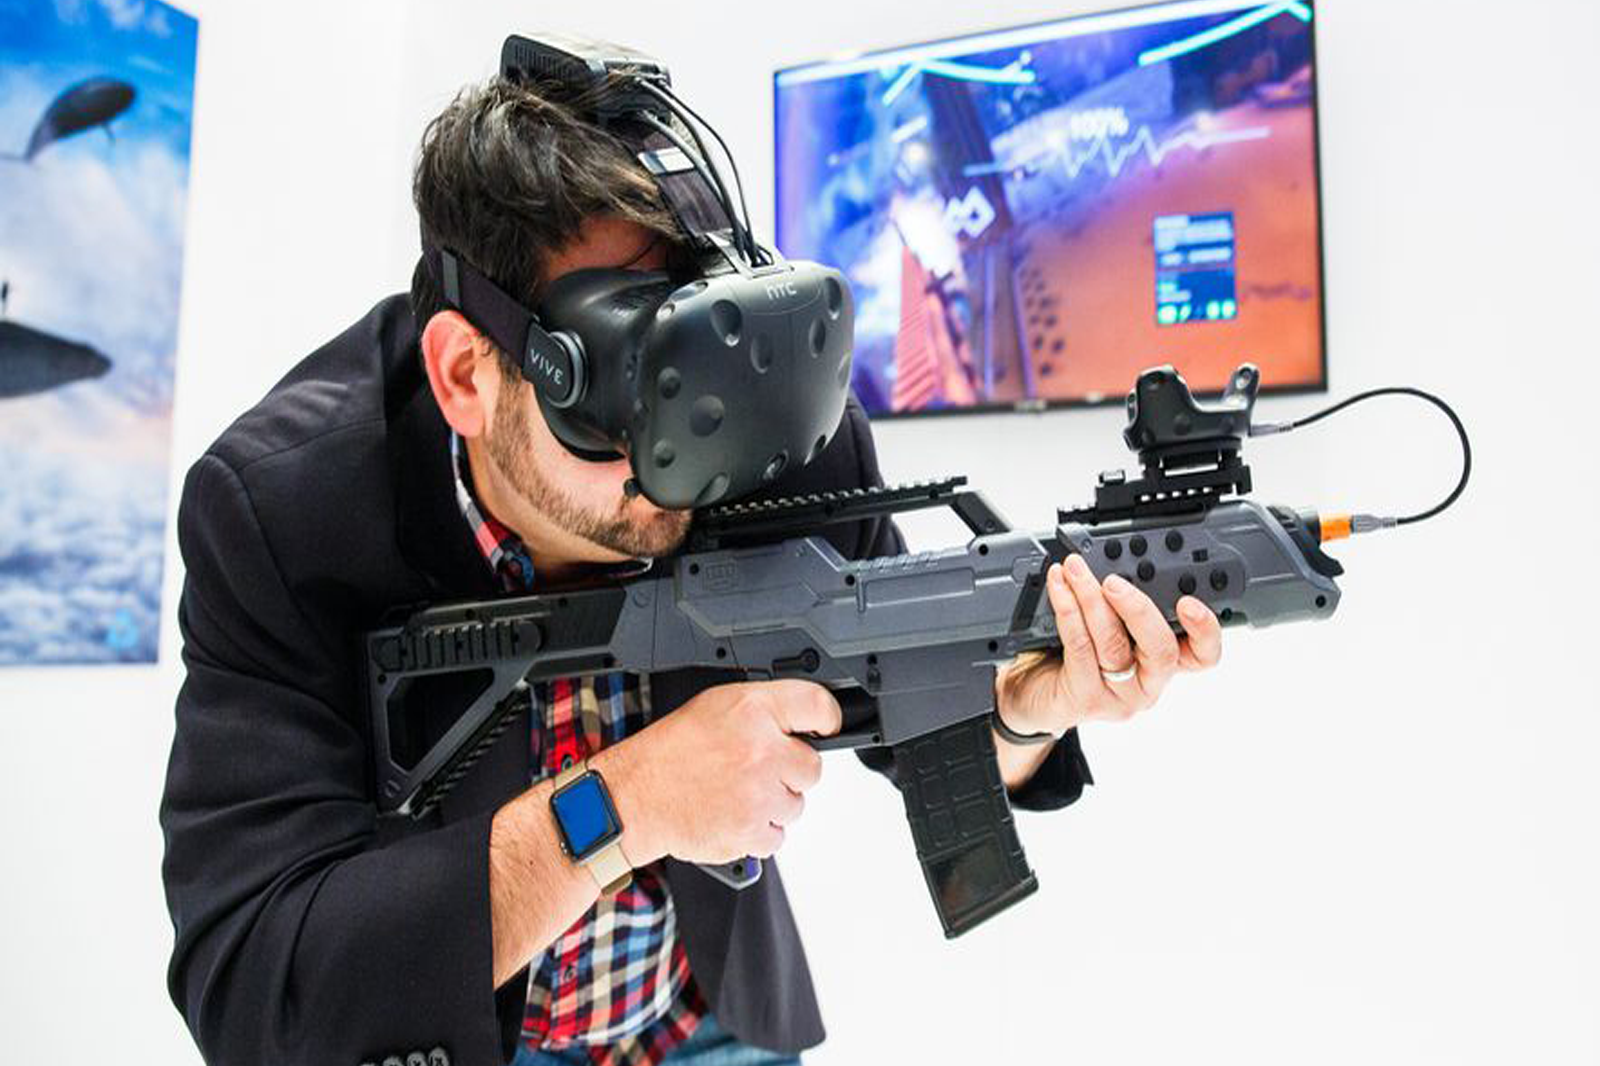 Virtual Goggles: What's Good And Bad About VR Goggles?